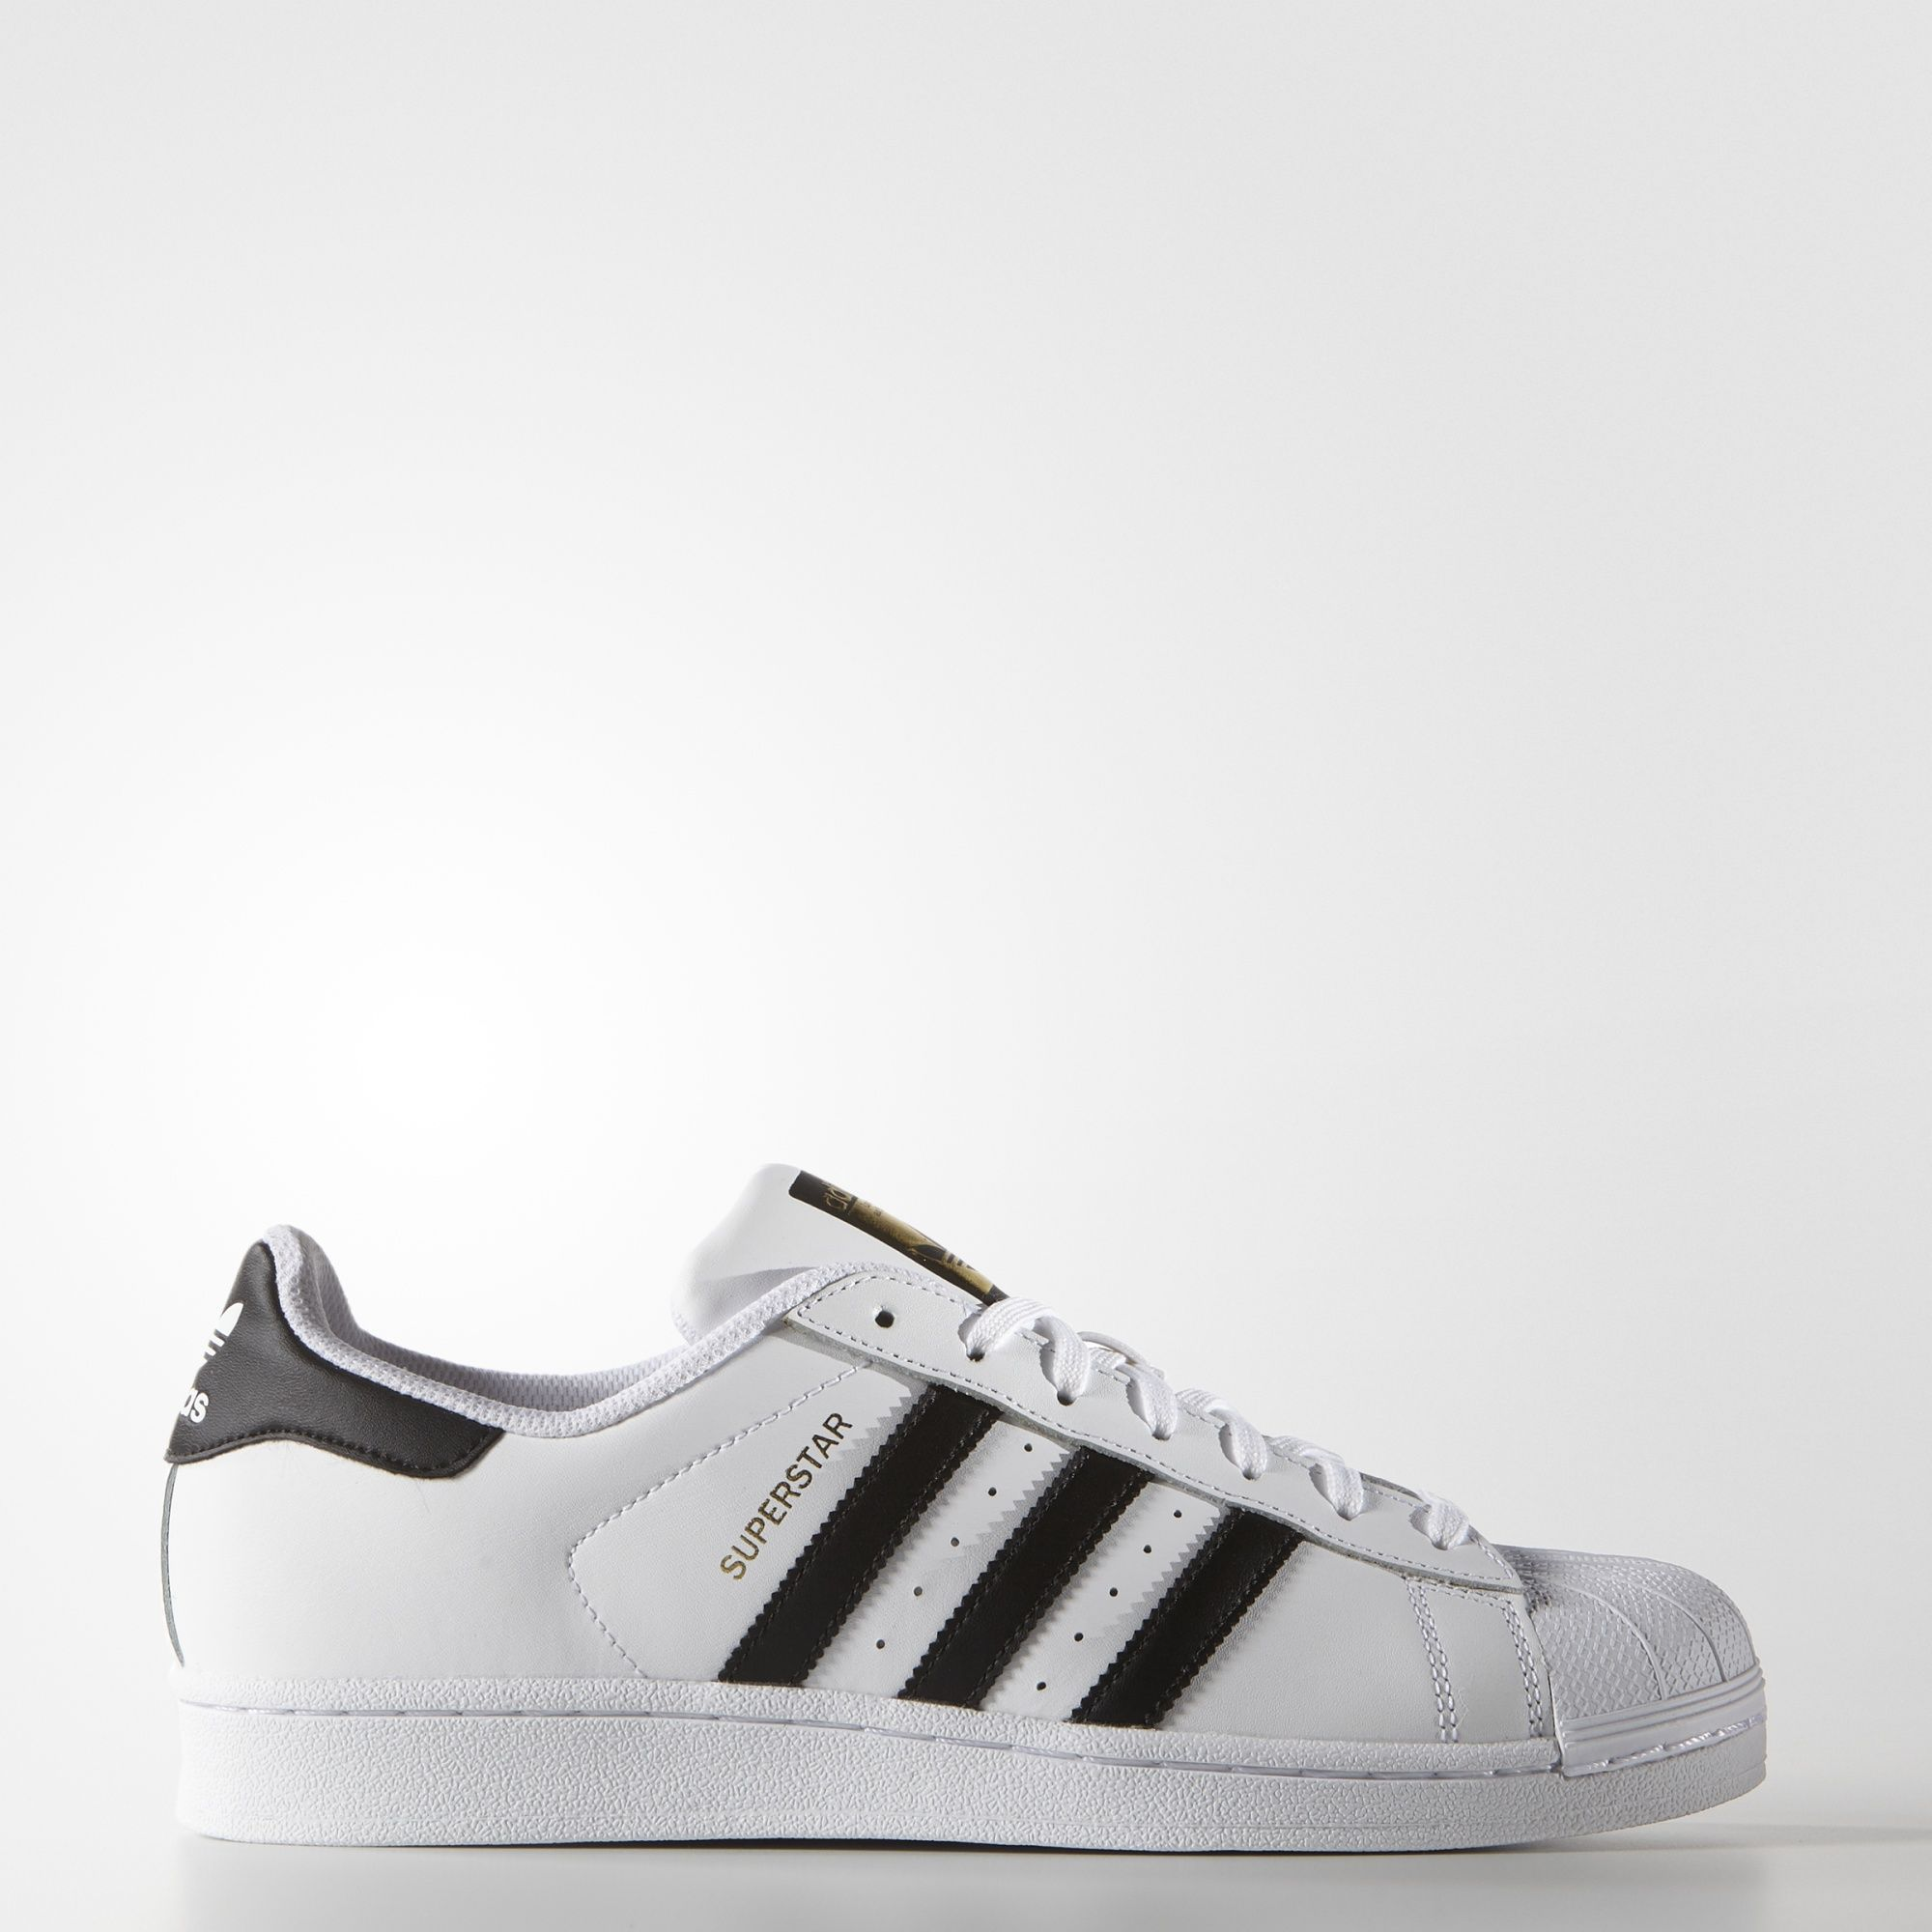 UK Shoes Store - Adidas Originals Superstar Shoes Sneaker Mixed Child White (White Ftwr / Core Blac